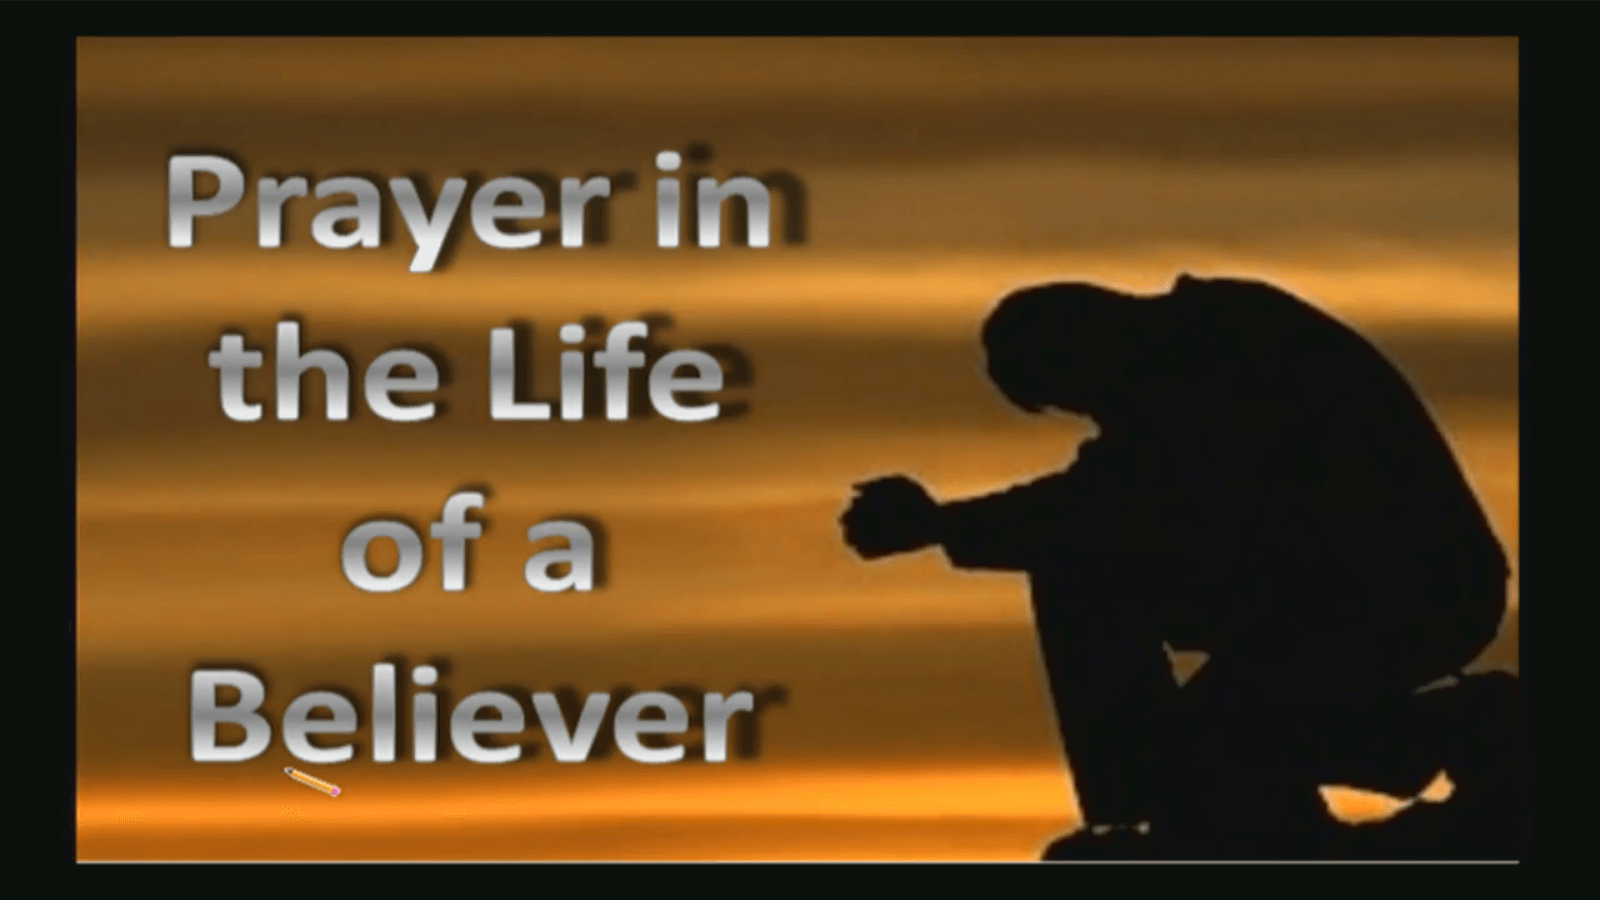 Prayer in the Life of a Believer